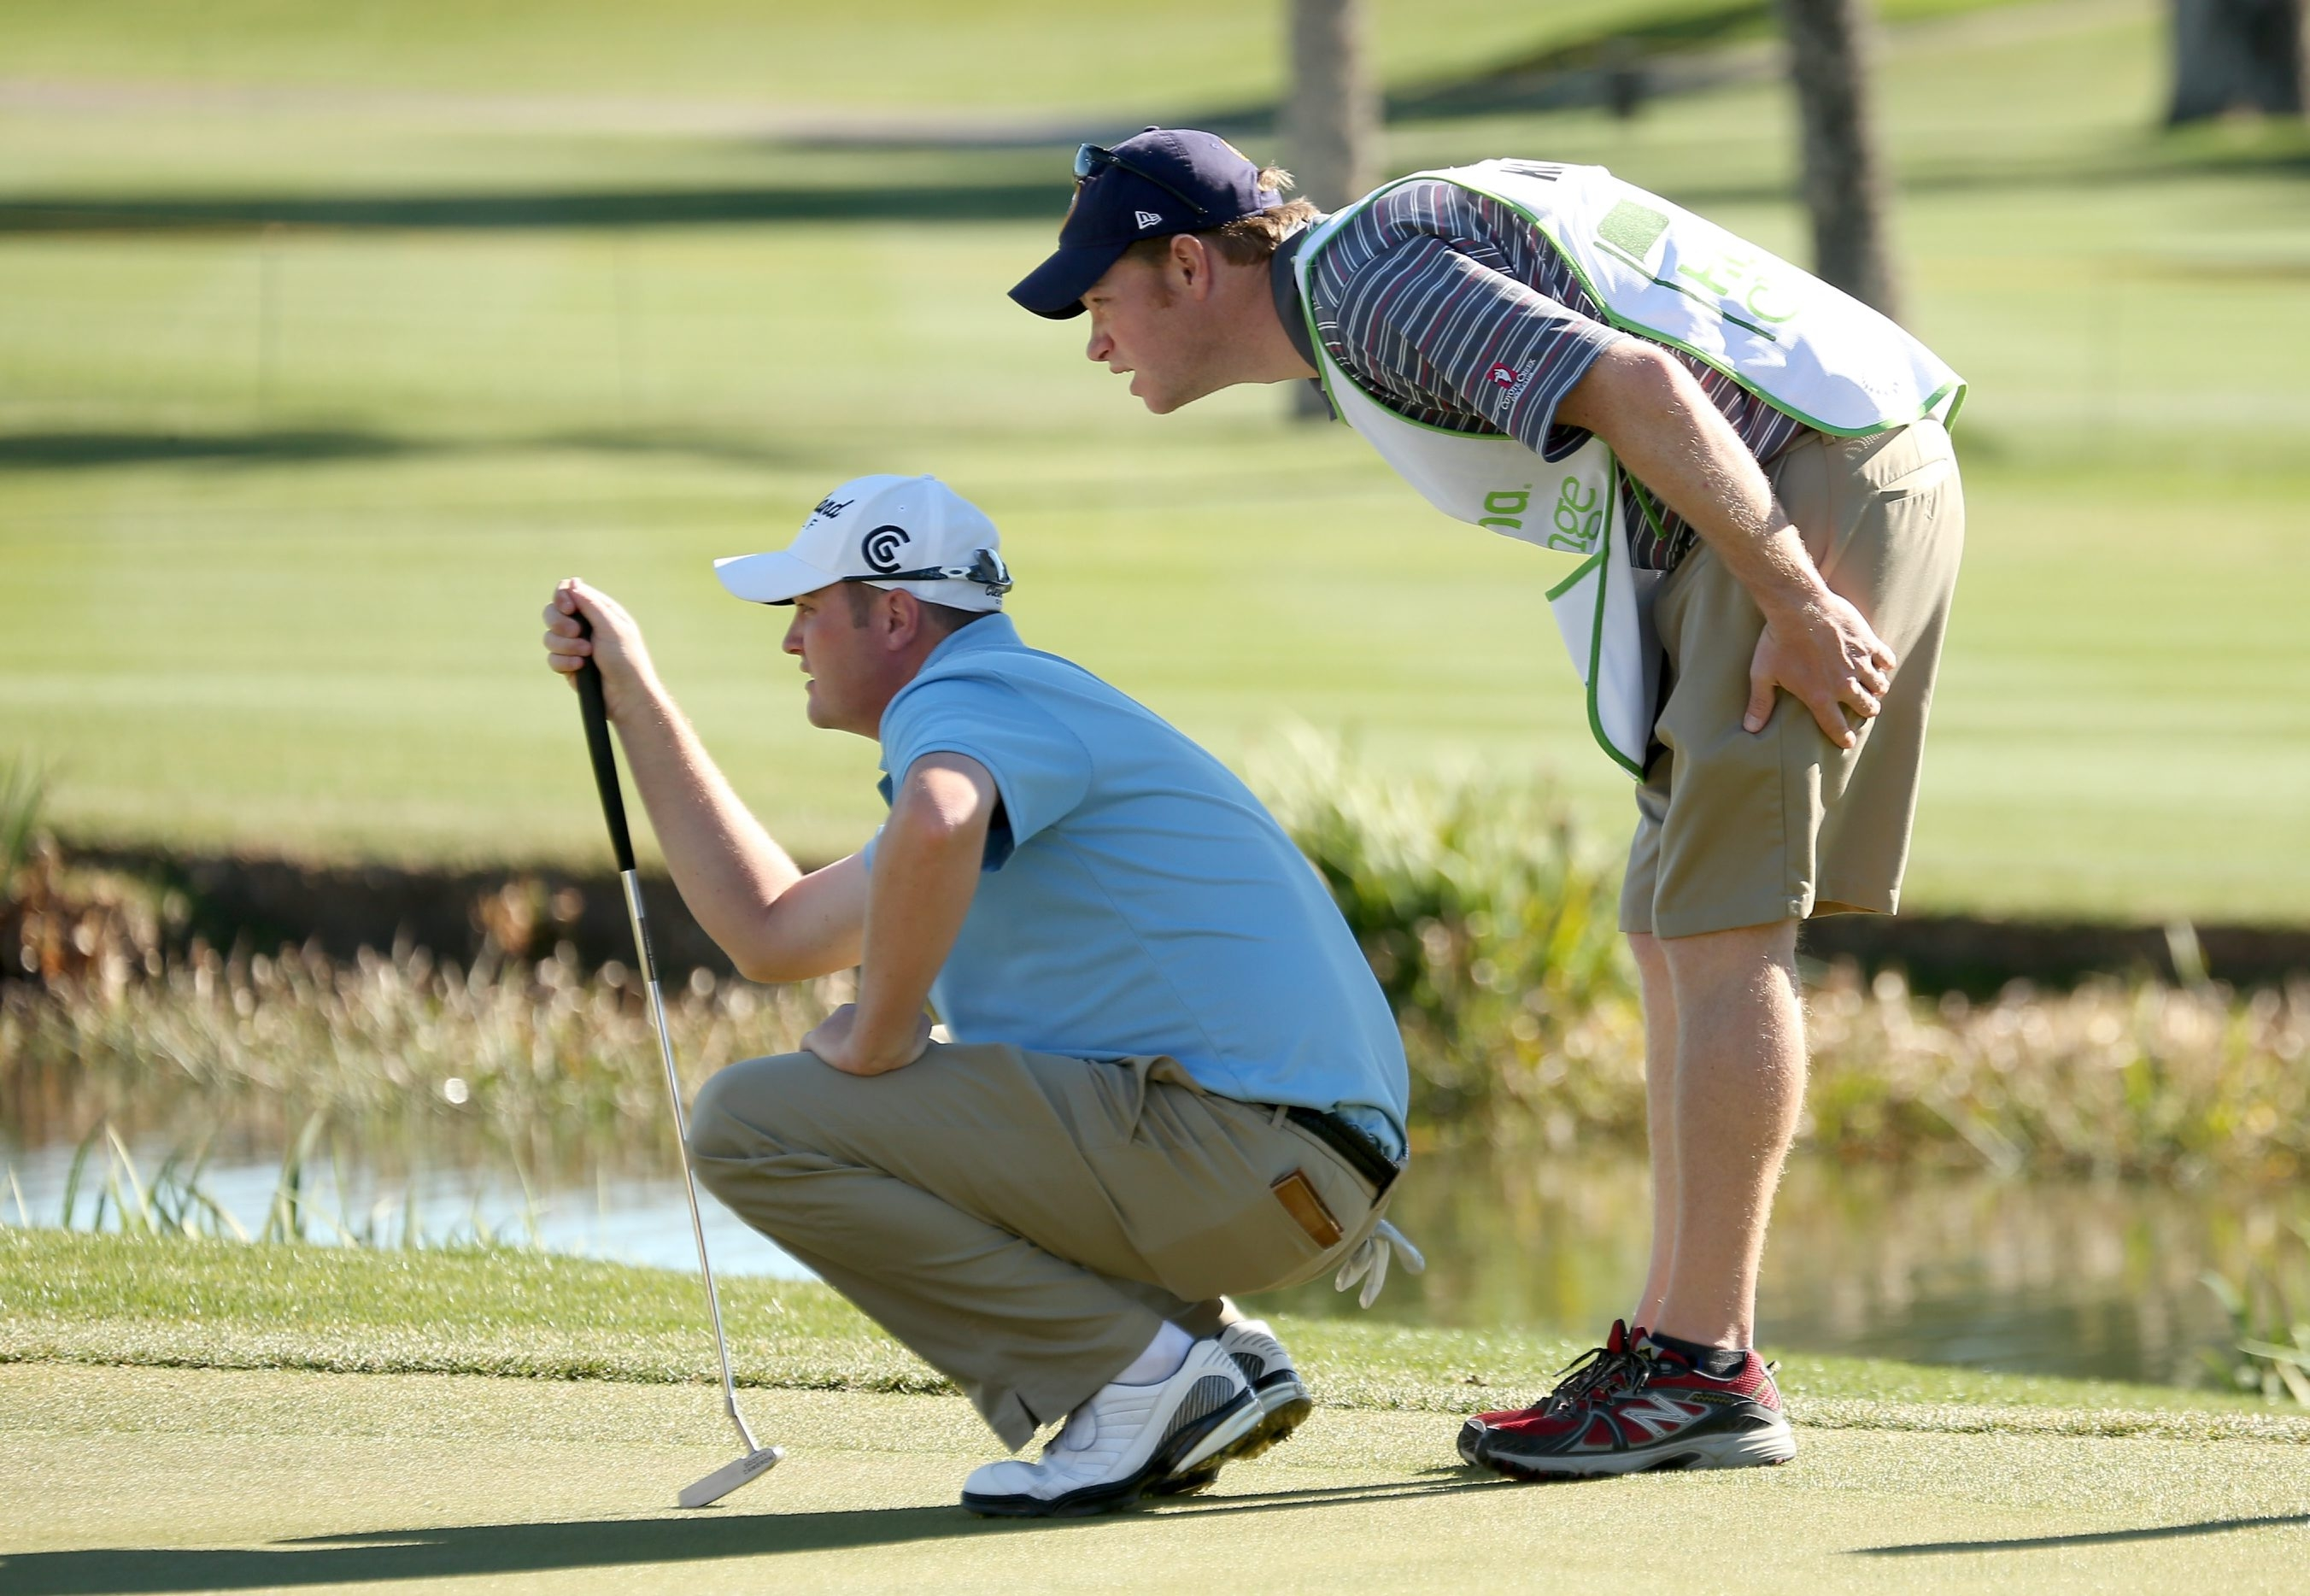 Caddie Aaron Alpern of Buffalo, right, helps PGA Tour pro Jason Kokrak line up a putt at the Humana Challenge in January 2013.